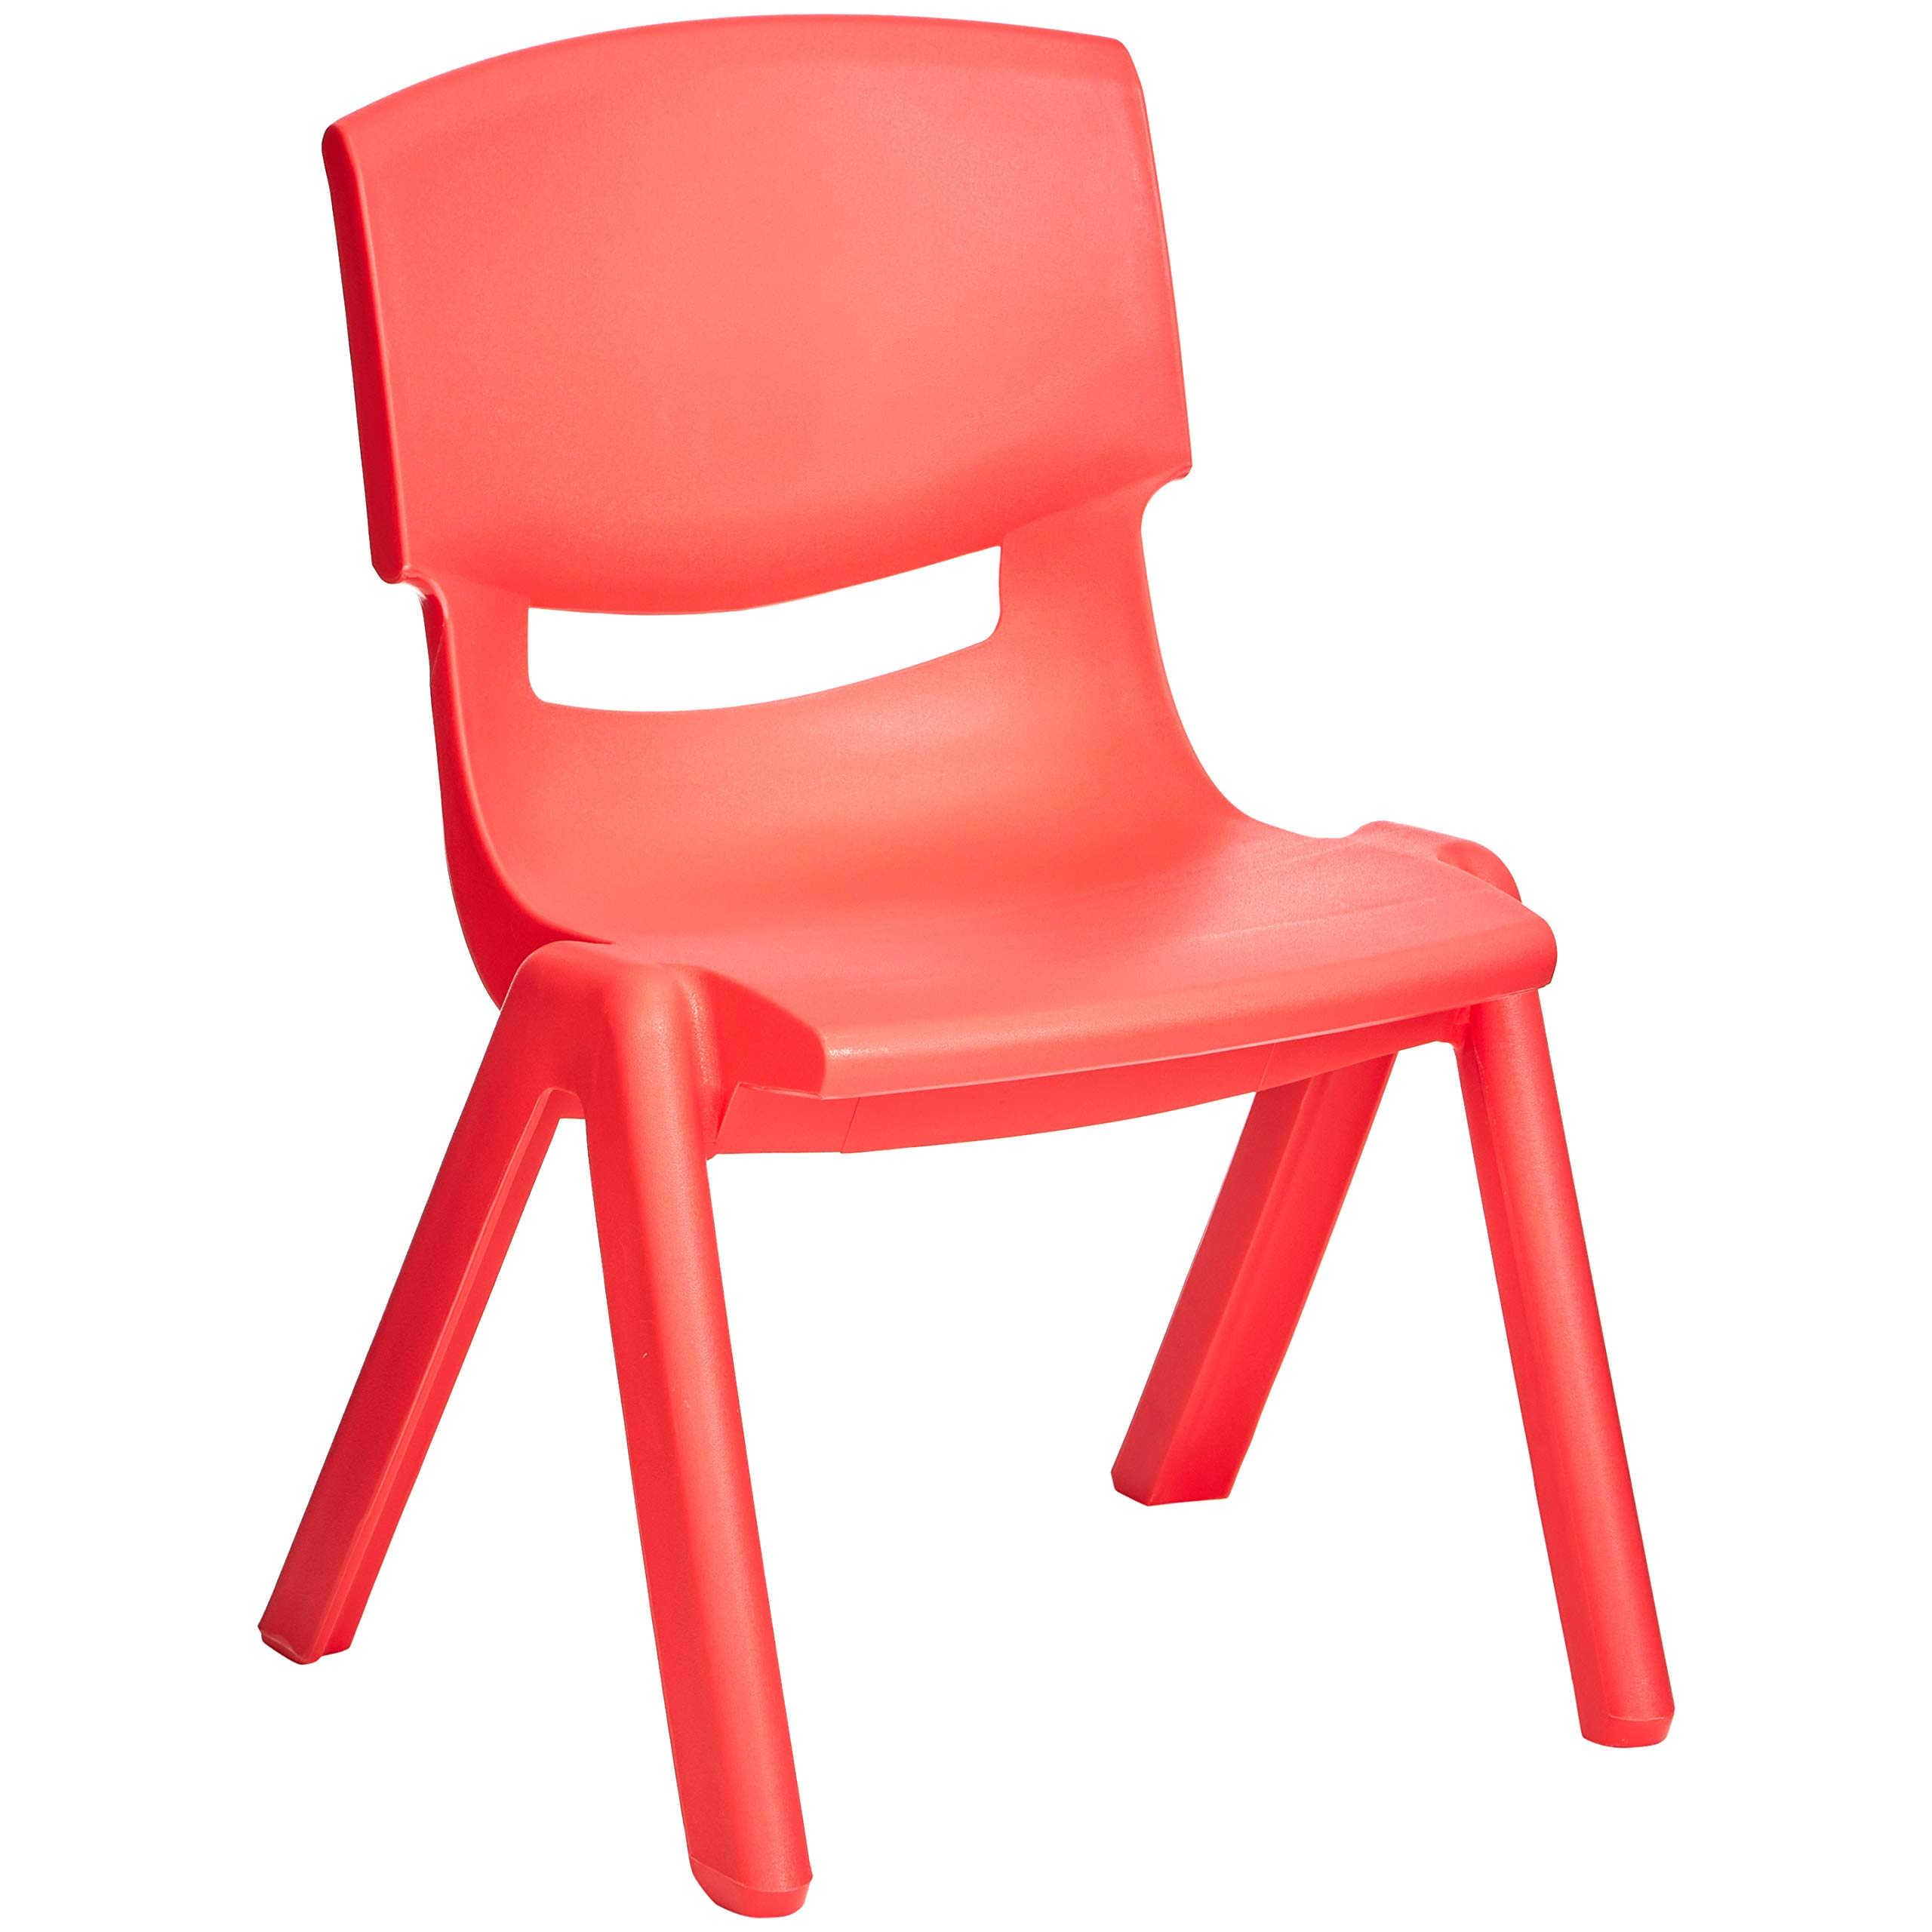 Amazonbasics 10'' School Stack Resin Chair,Red, 6 Pack